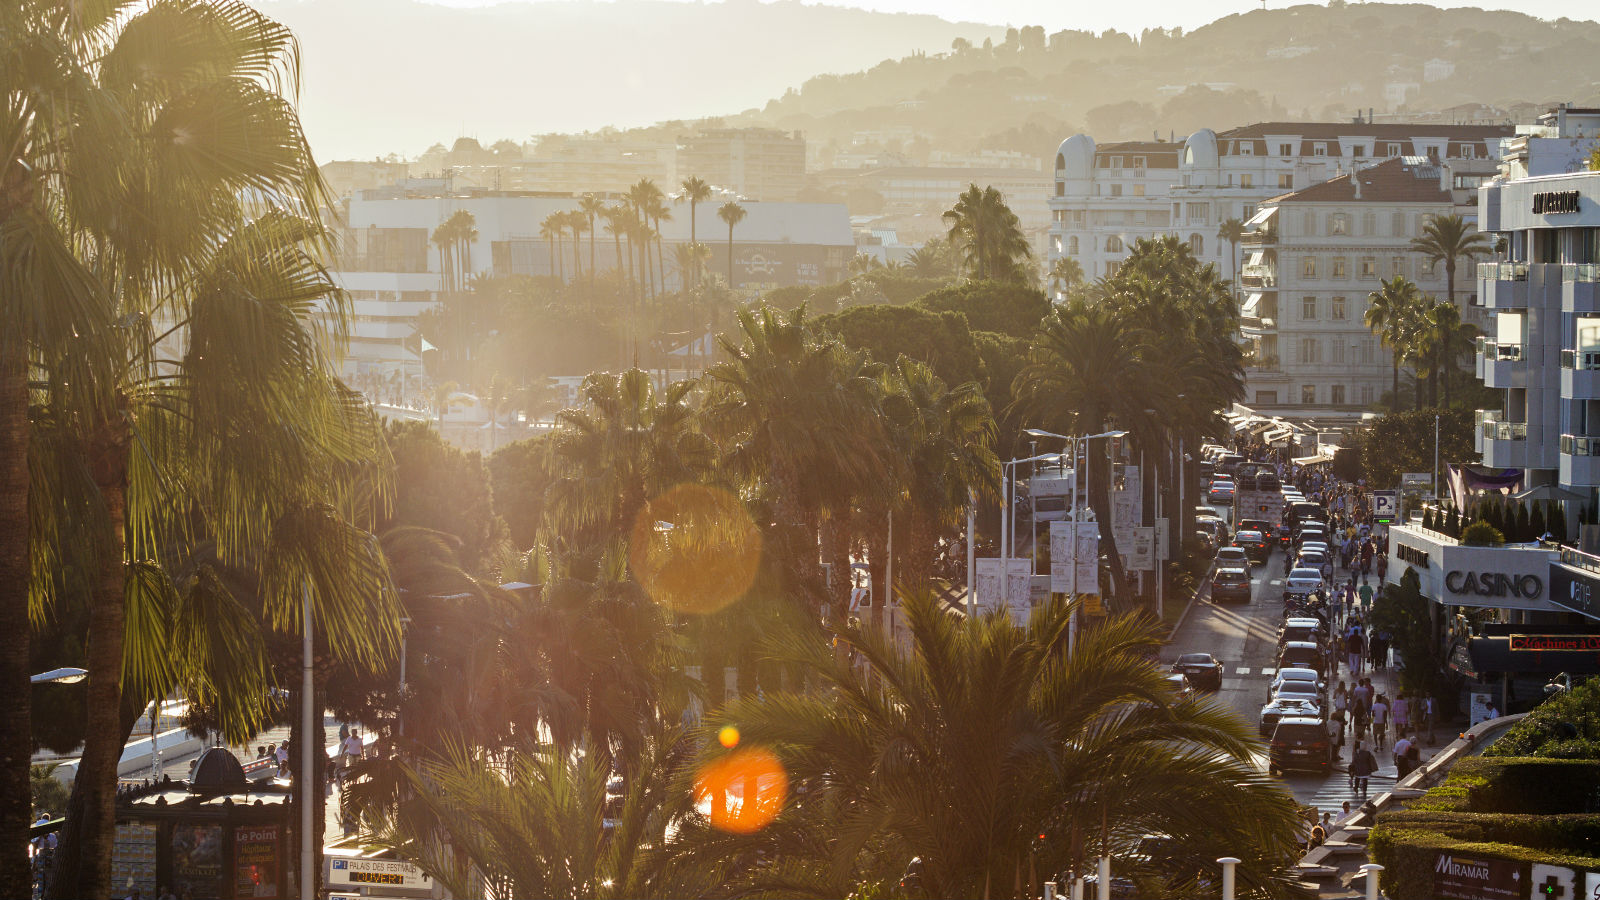 Fast Cars, Nude Beaches, and High-Rollers: The 4-Day Weekend on the French Riviera